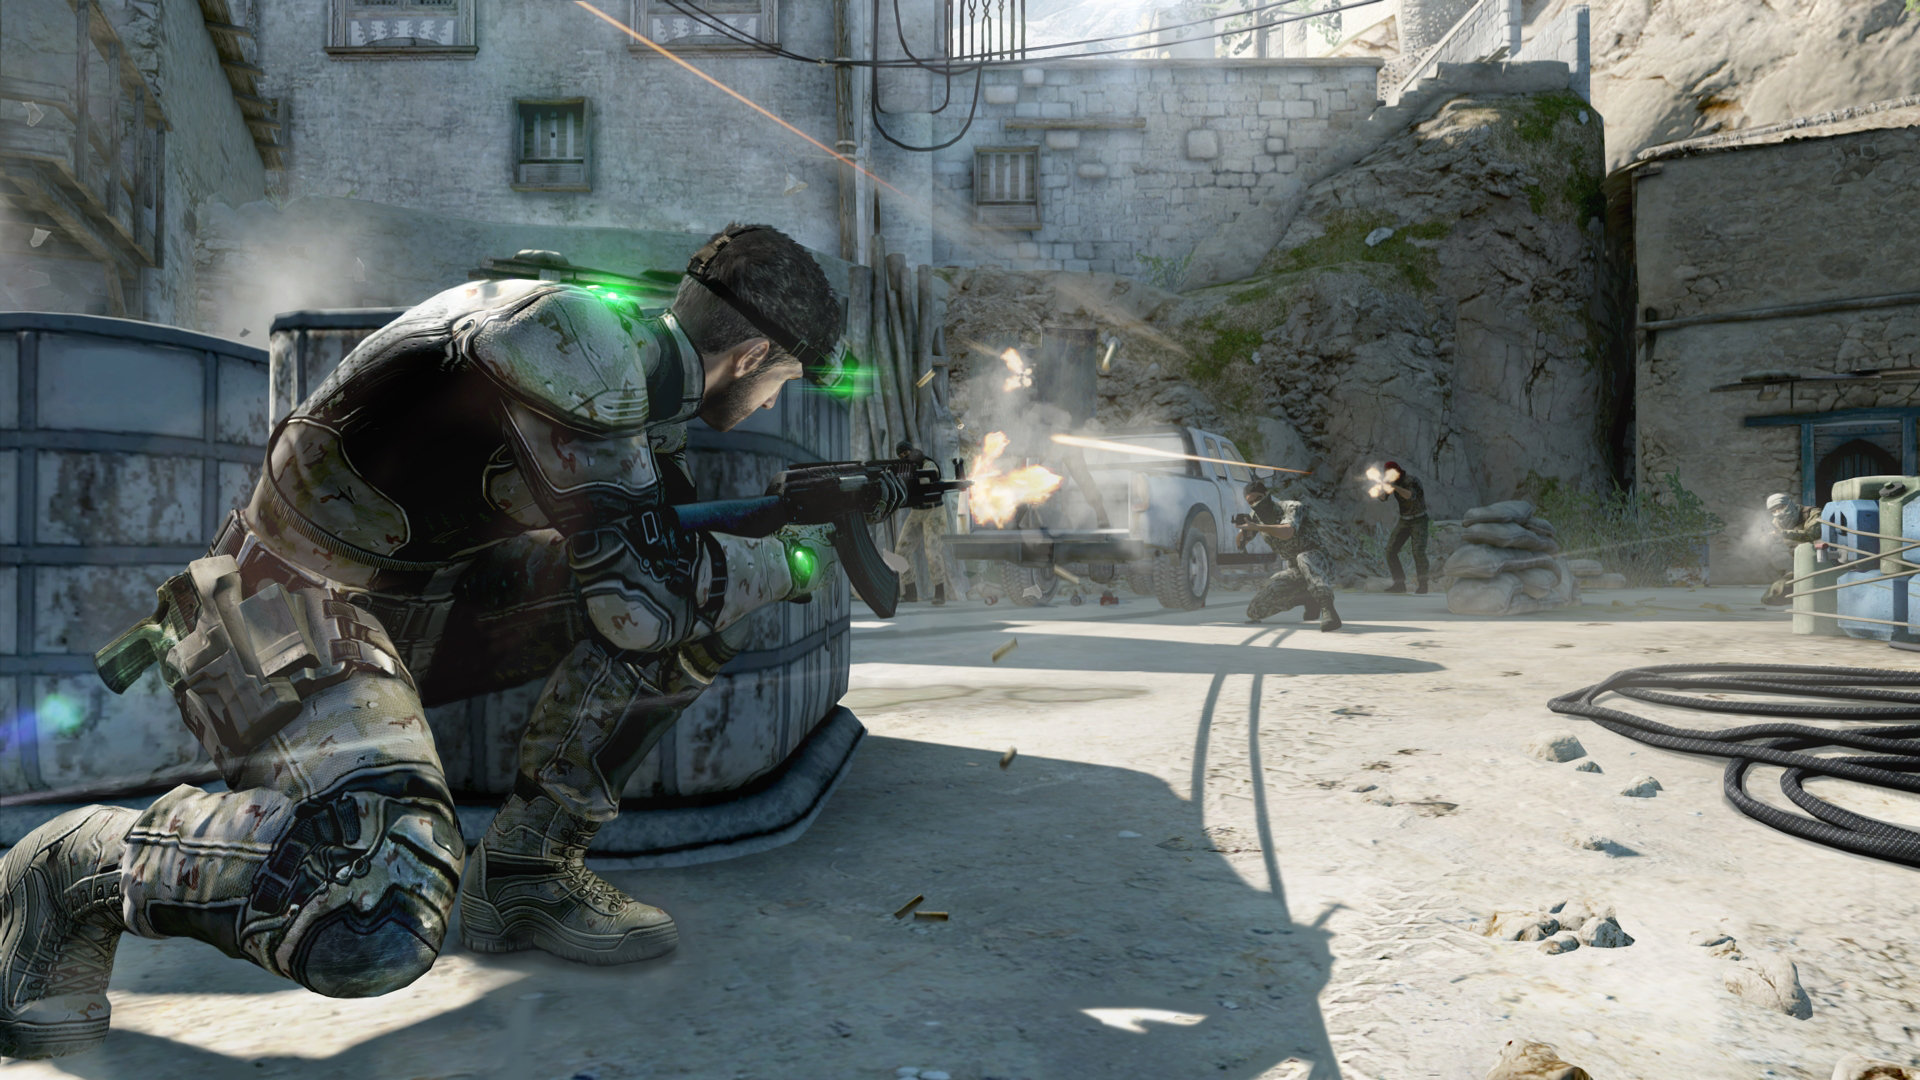 Resultado de imagen para Tom Clancy's Splinter Cell: Blacklist